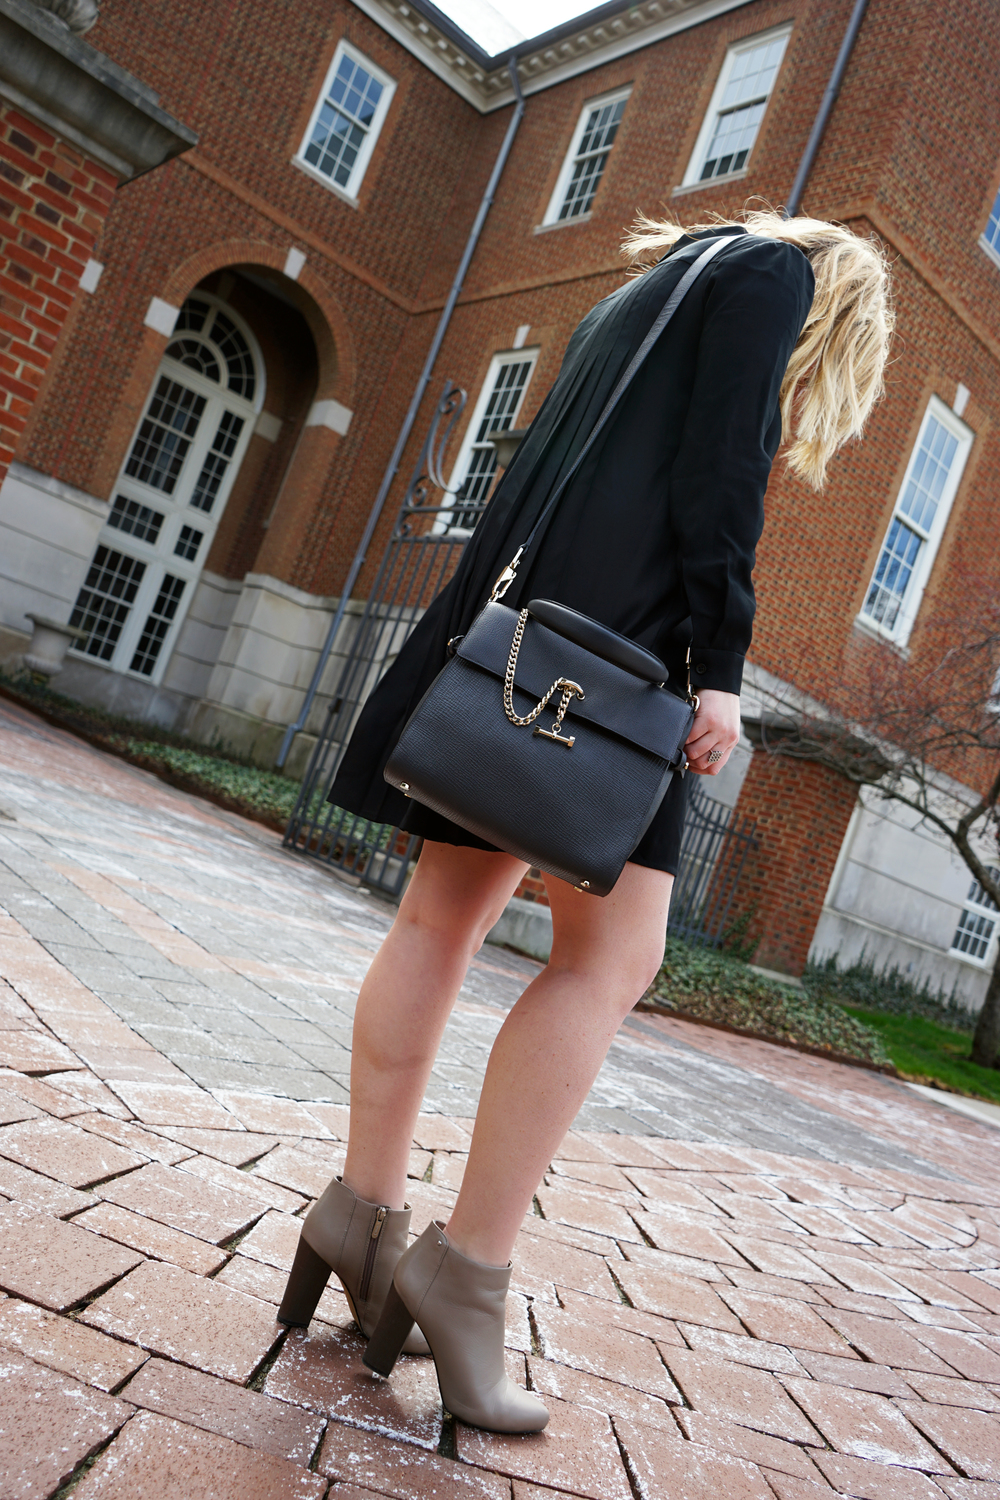 Ann Taylor Pleat Back Shirtdress, Circus by Sam Edelman Bond Booties, Luana Italy Paley Satchel - Maggie a la Mode